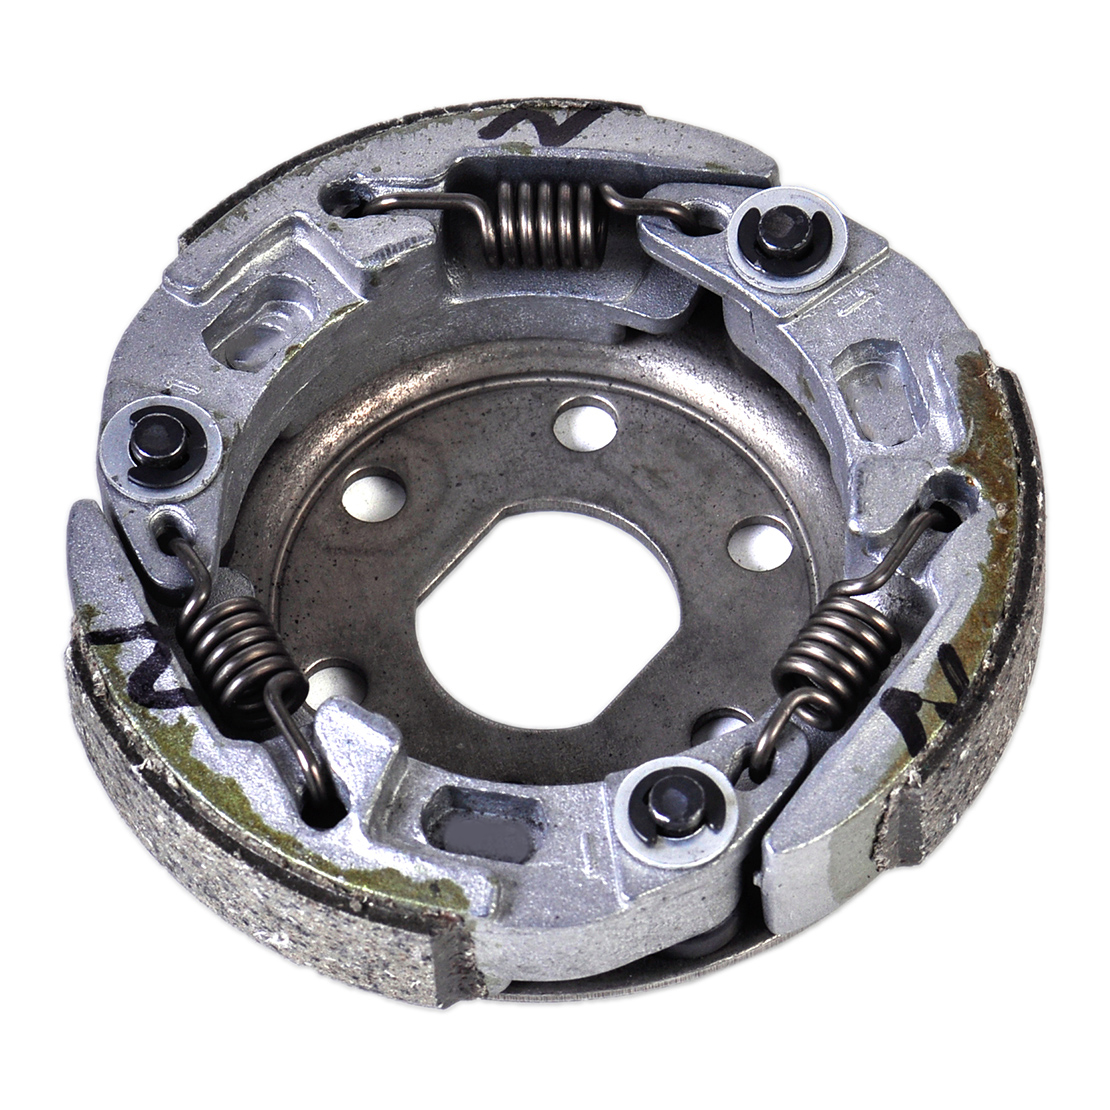 CITALL Good Performance Metal Racing Clutch Replacement Fit for GY6 139QMB 50cc Scooter ATV Quad Moped Loncin Yamaha Suzuki ...